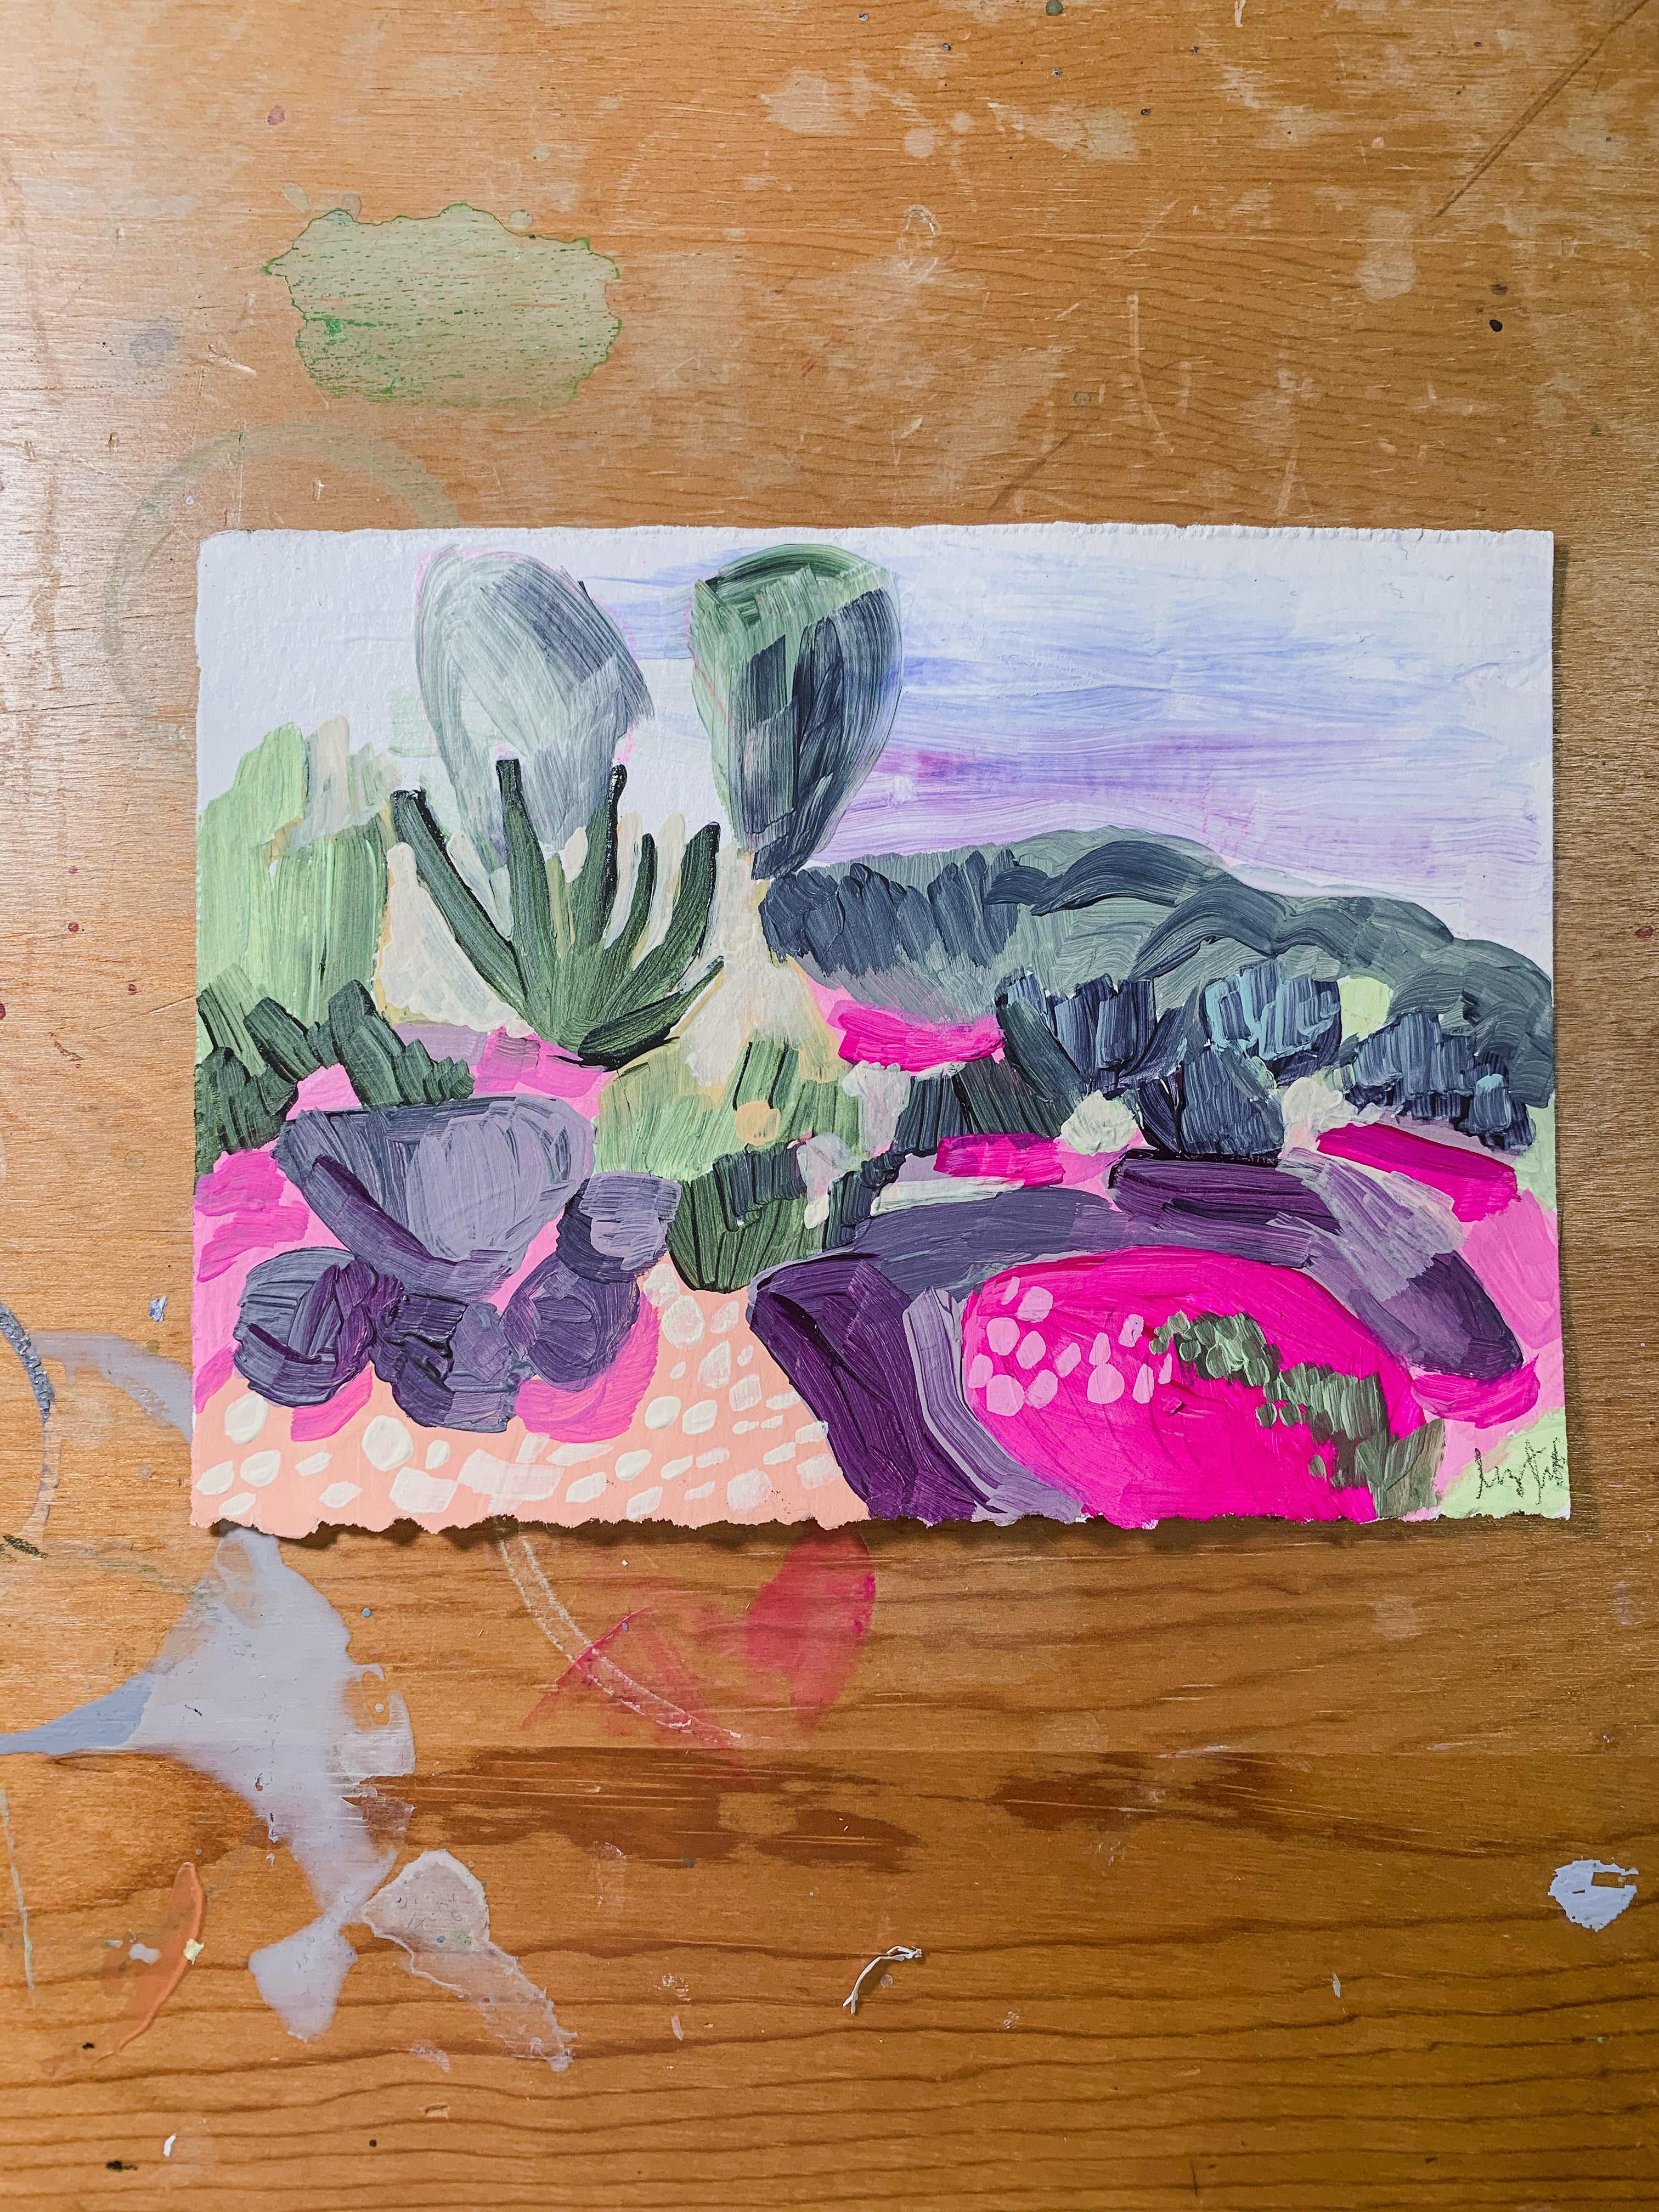 Jardin I, Small Acrylic Painting (5x7 inches) on Paper, Unframed